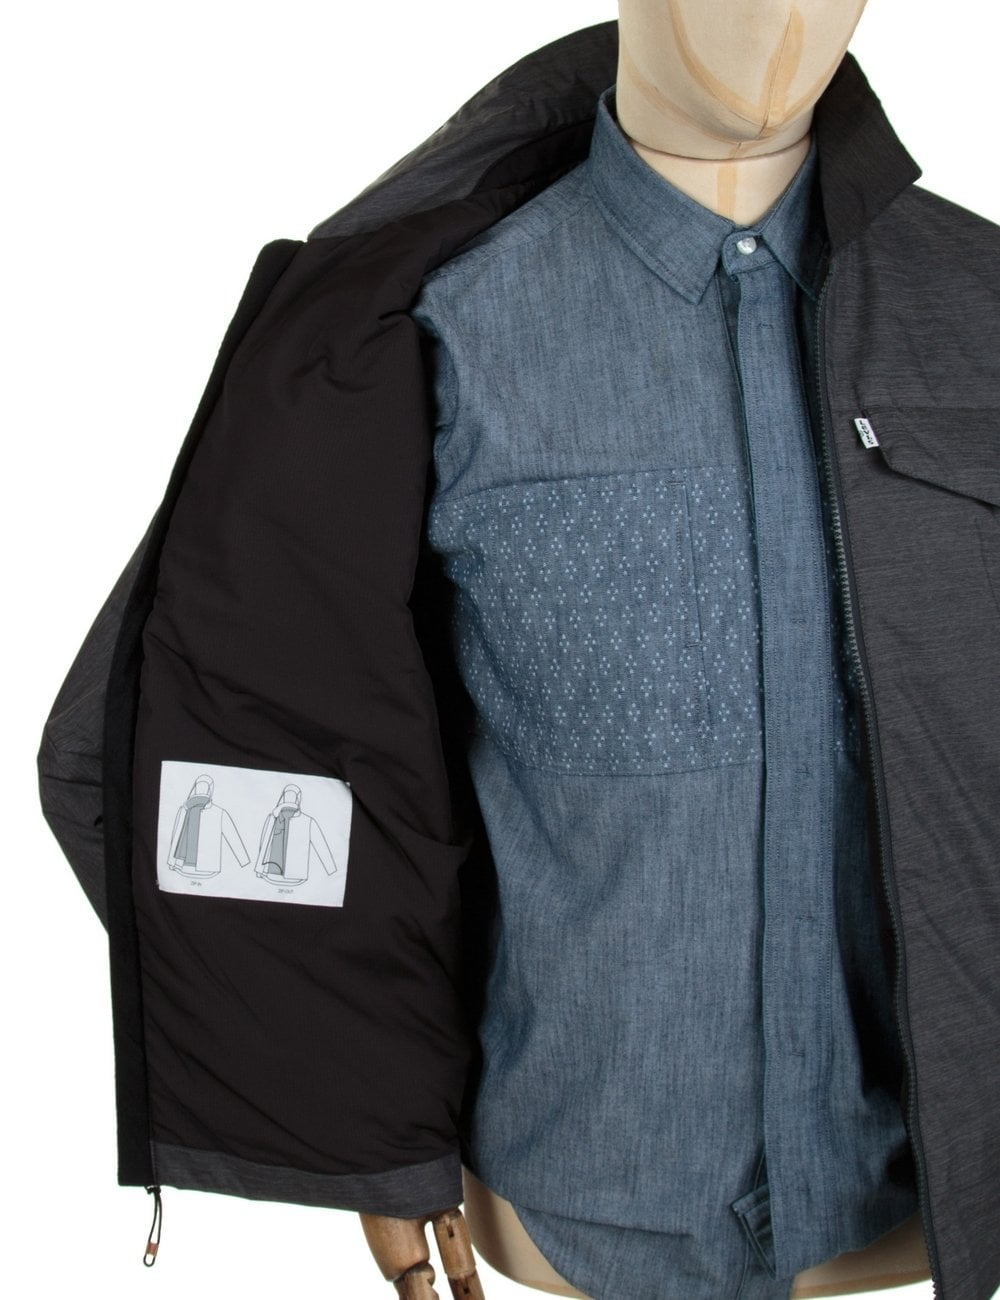 Levis Commuter Jacket | Commuter Clothing | Levis Commuter Jacket